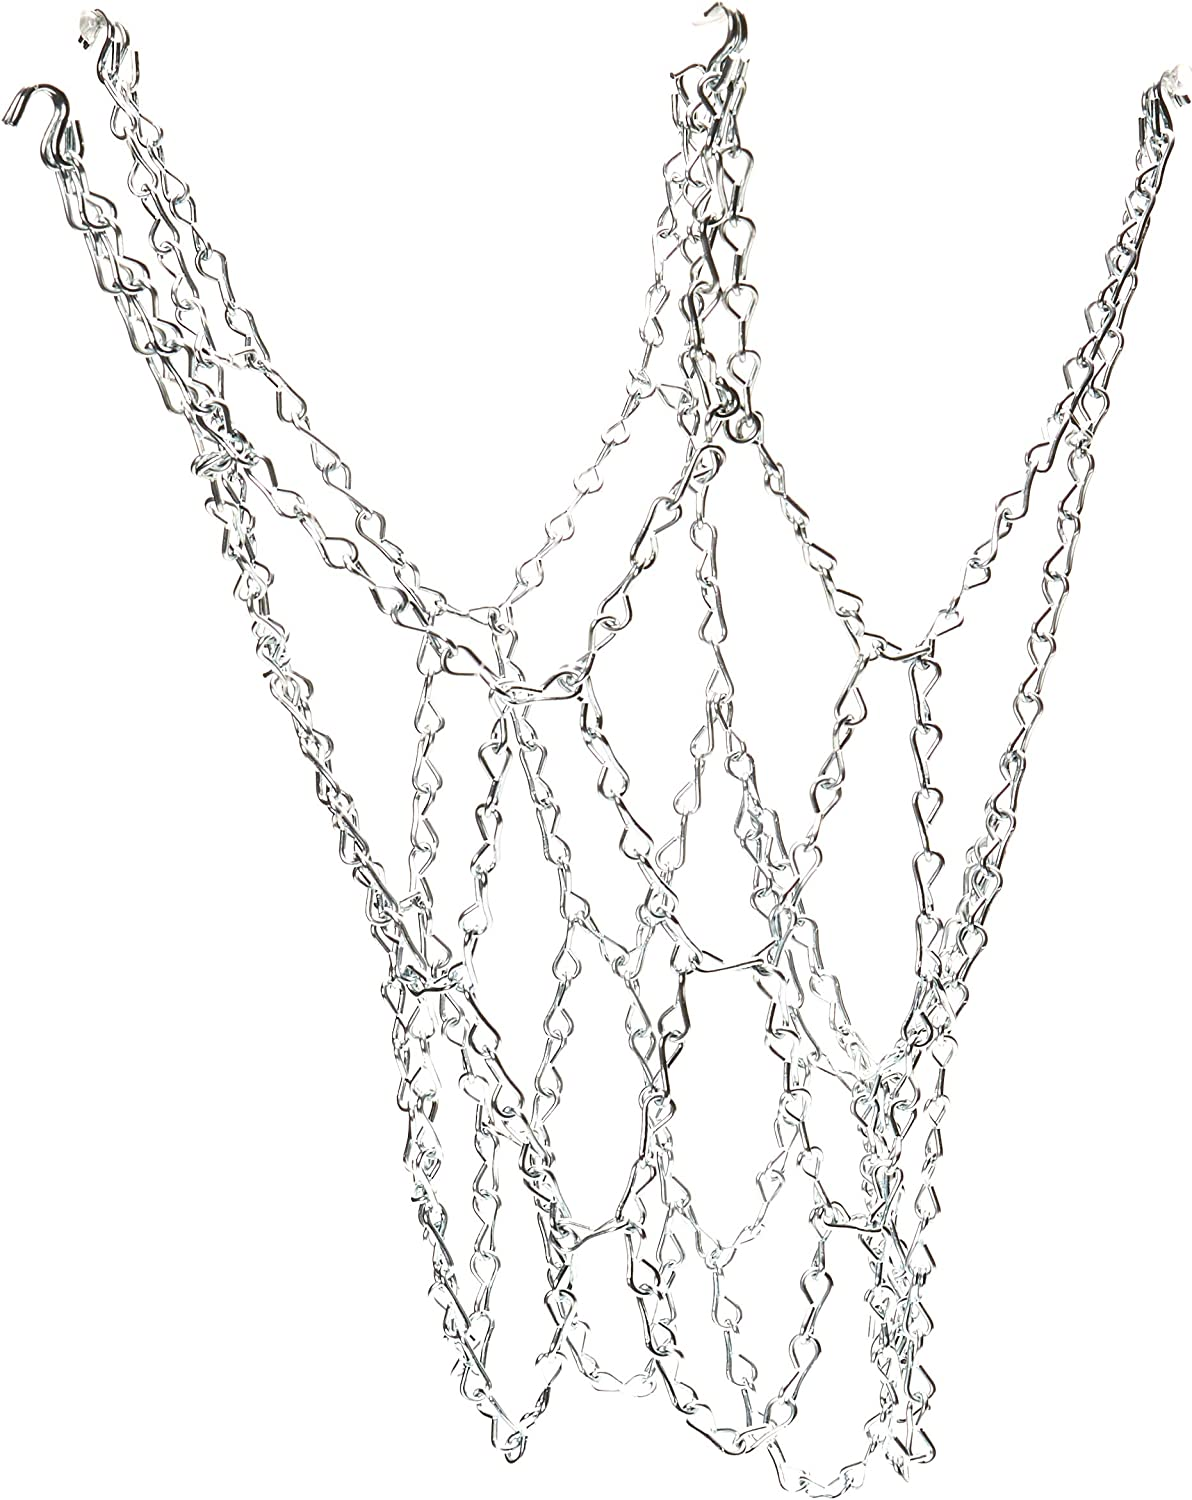 Champion Sports Galvanized Max 42% OFF Steel Chain Basketball 4 of Net Pack Clearance SALE Limited time